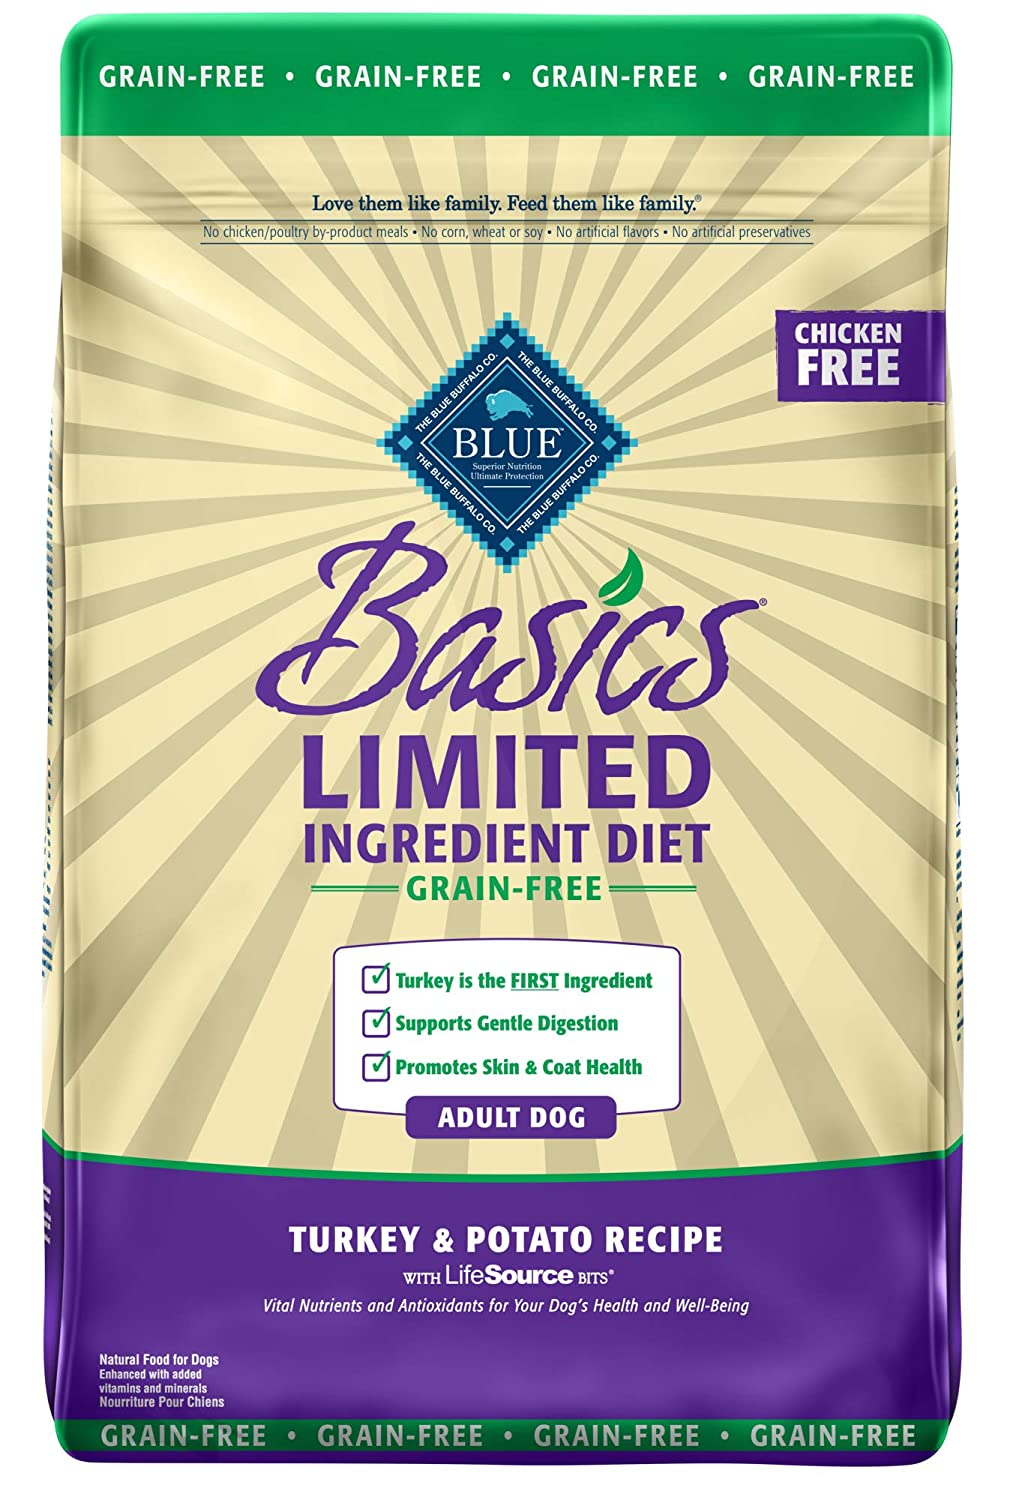 6. Blue Buffalo Basics Limited Ingredients Grain-Free Formula